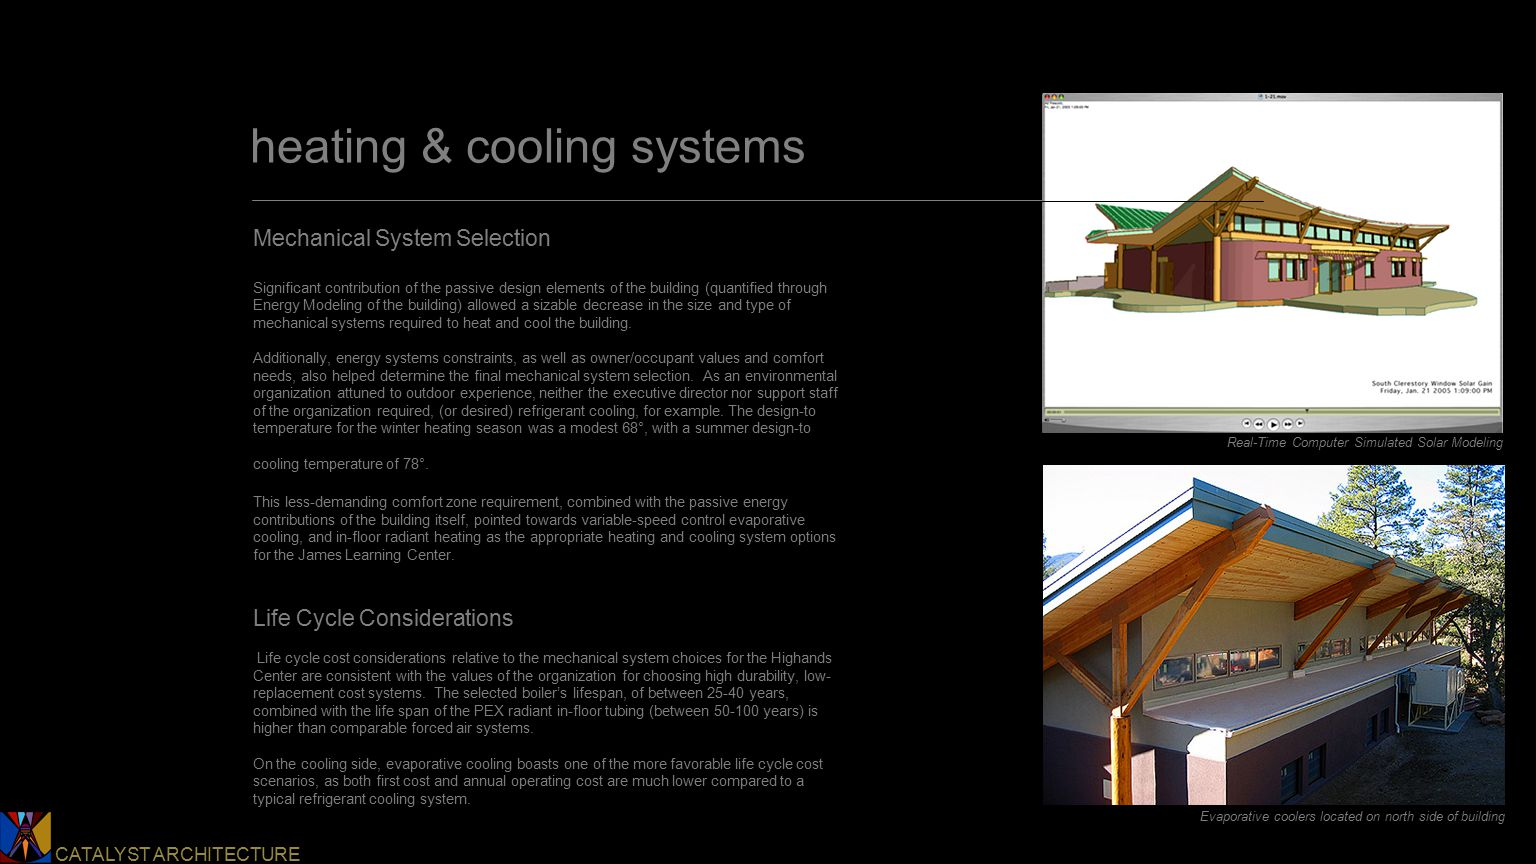 Catalyst Architecture CATALYST ARCHITECTURE heating & cooling systems Mechanical System Selection Significant contribution of the passive design elements of the building (quantified through Energy Modeling of the building) allowed a sizable decrease in the size and type of mechanical systems required to heat and cool the building.